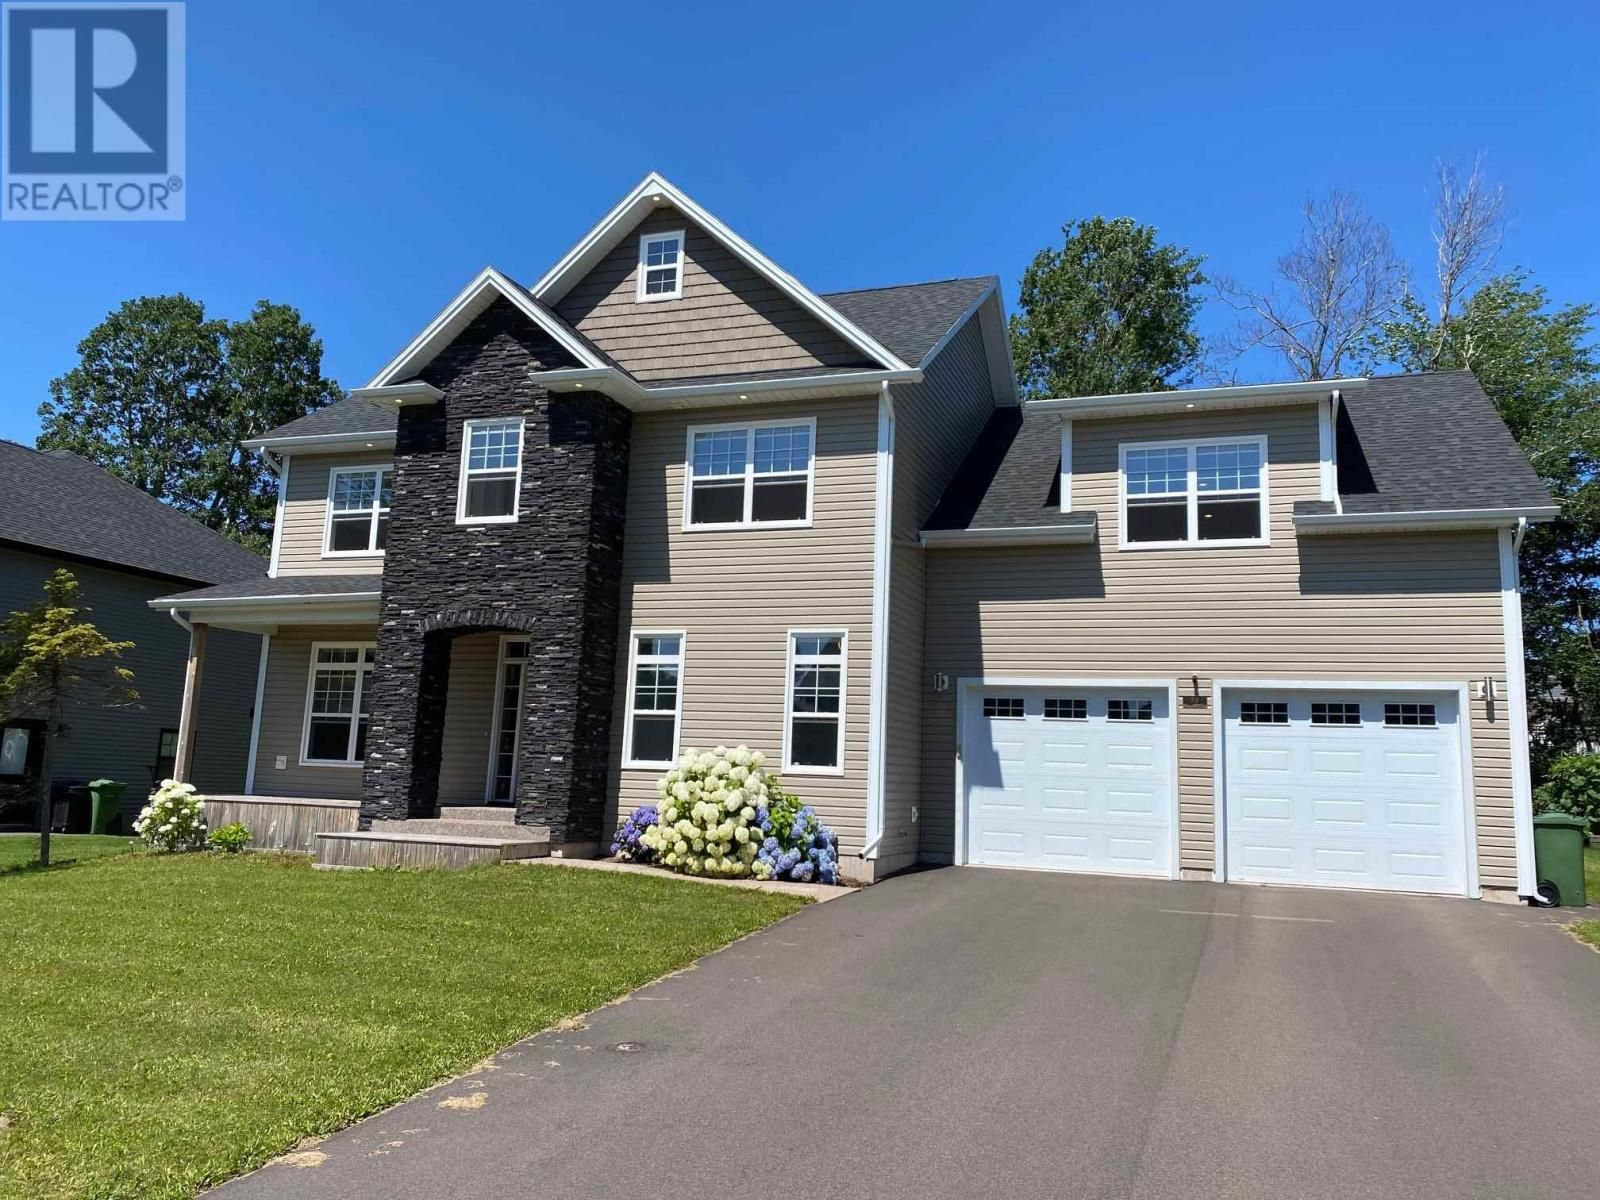 Main Photo: 93 Nash Drive in Charlottetown: House for sale : MLS®# 202119991